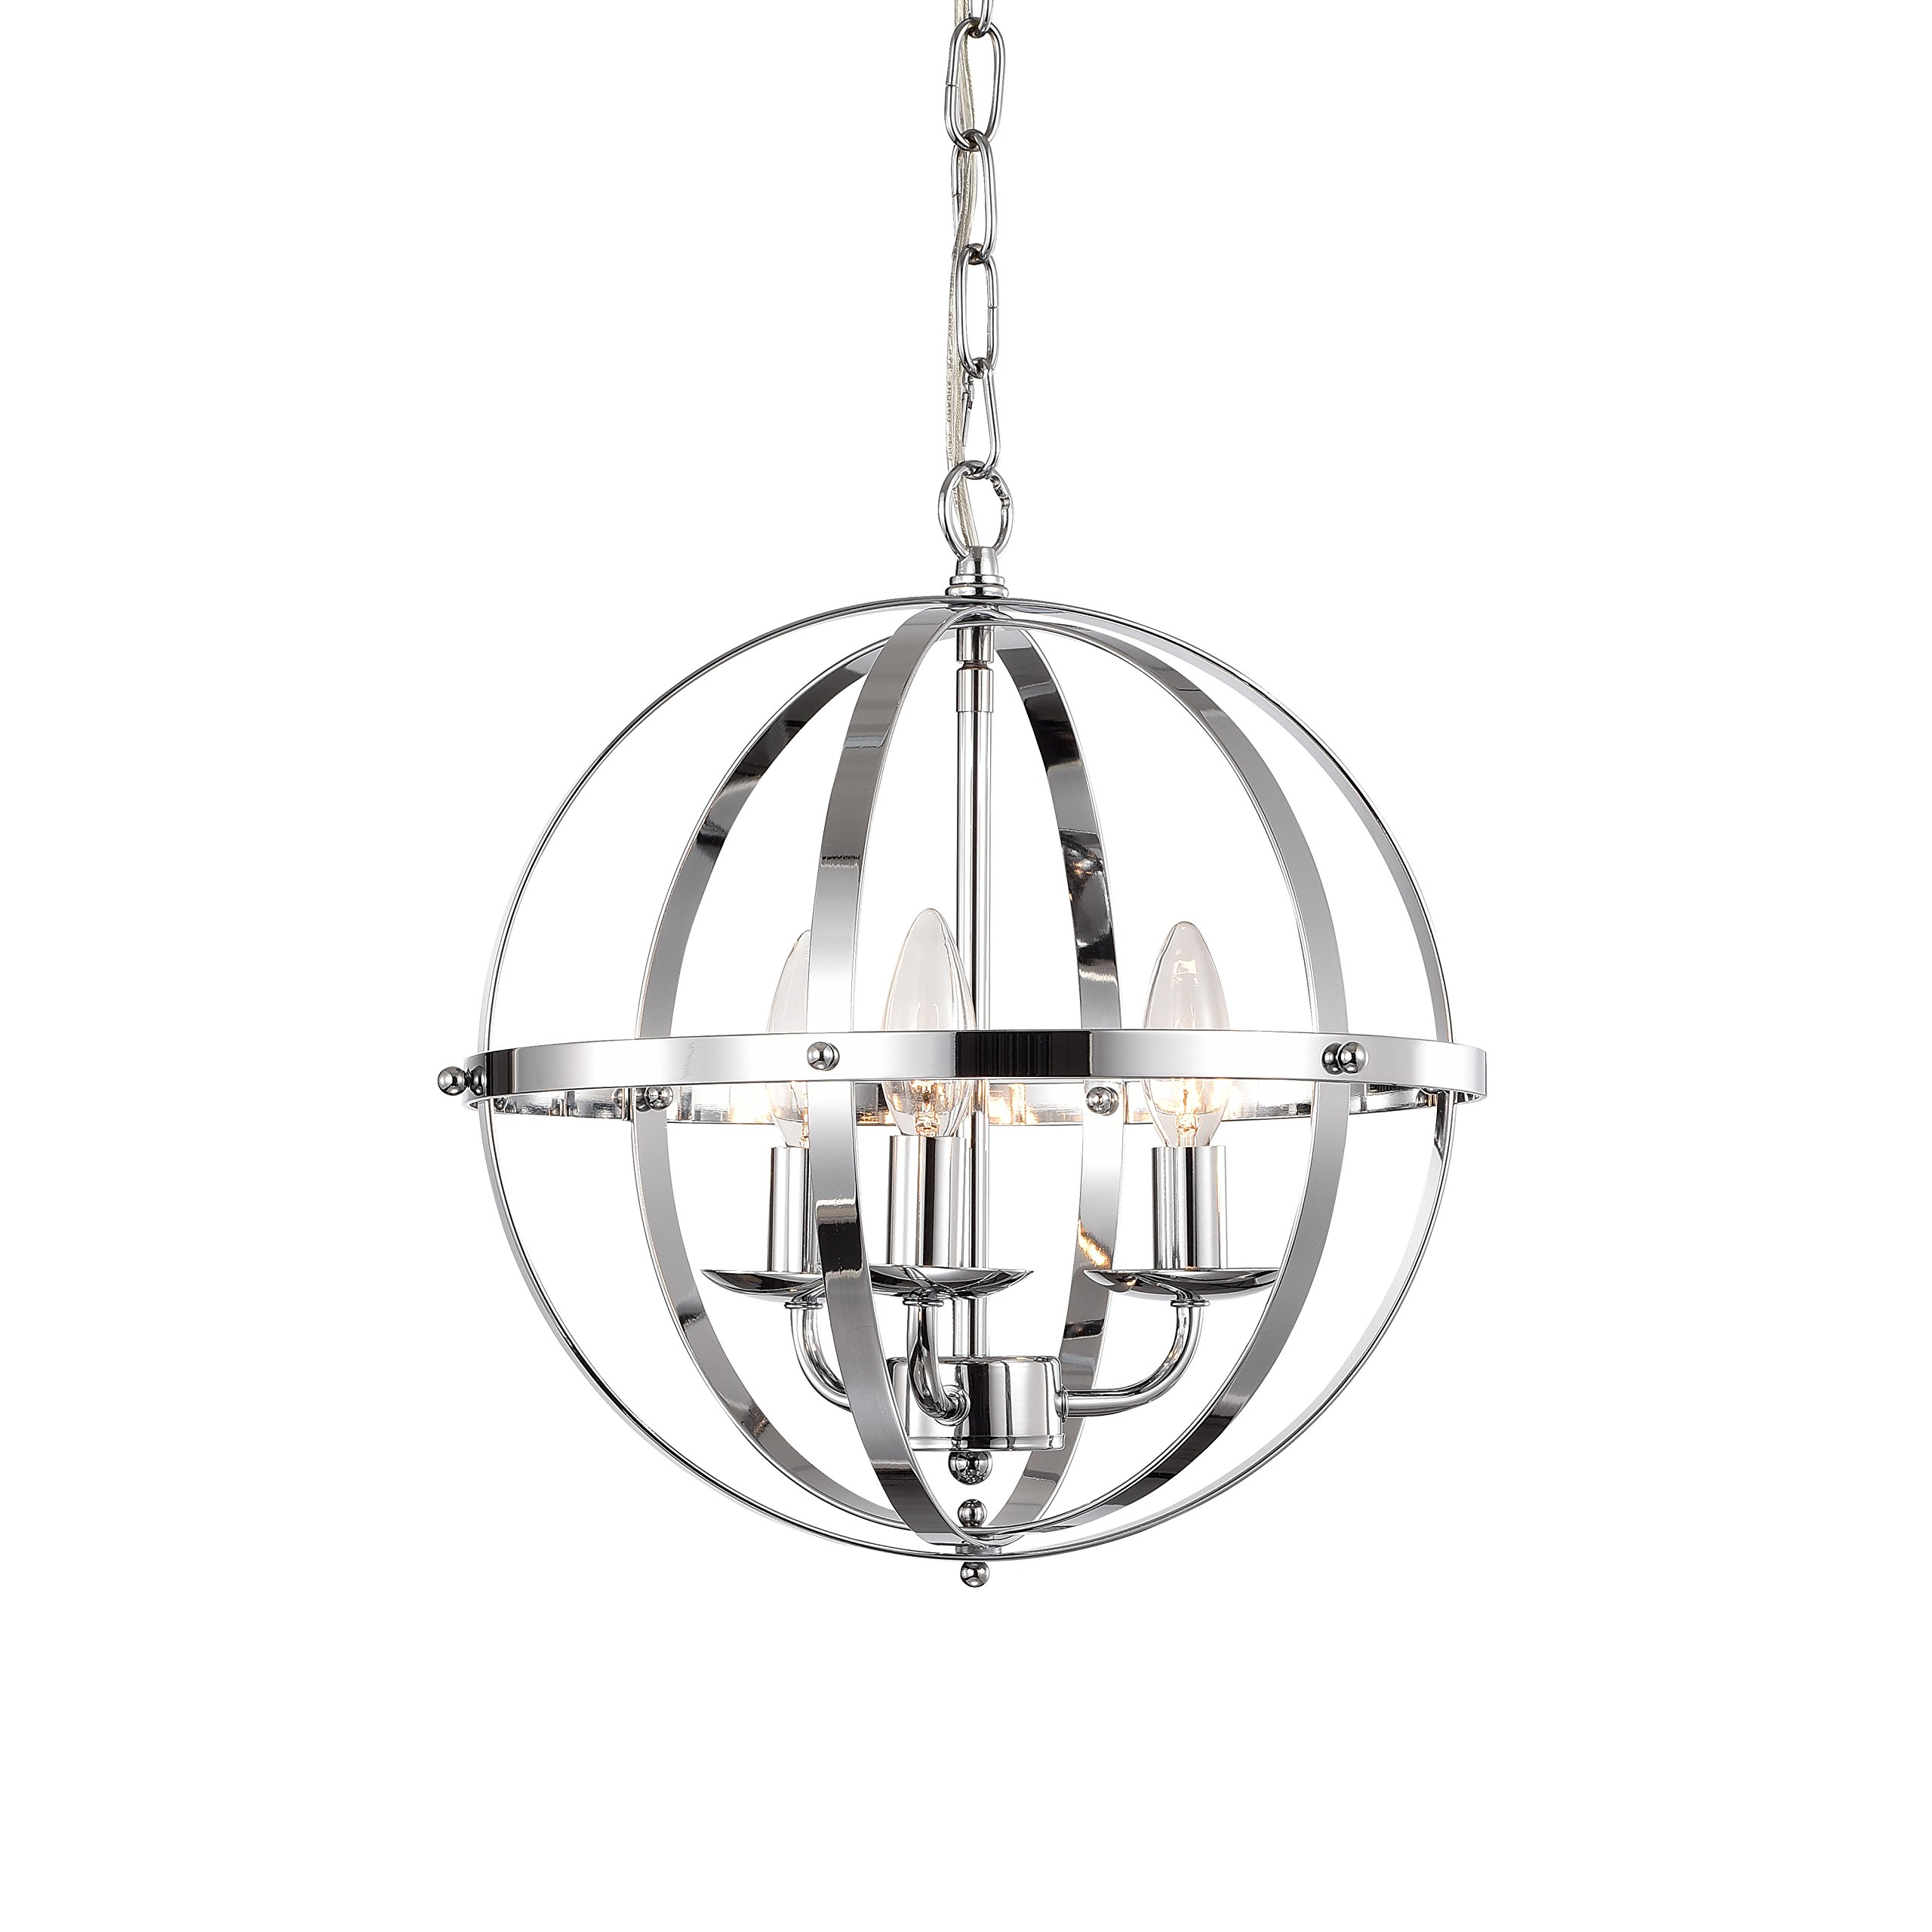 LaLuLa Chrome Chandelier Lighting Industrial Globe Chandeliers 3 Light Metal Ceiling Light Fixture 17176